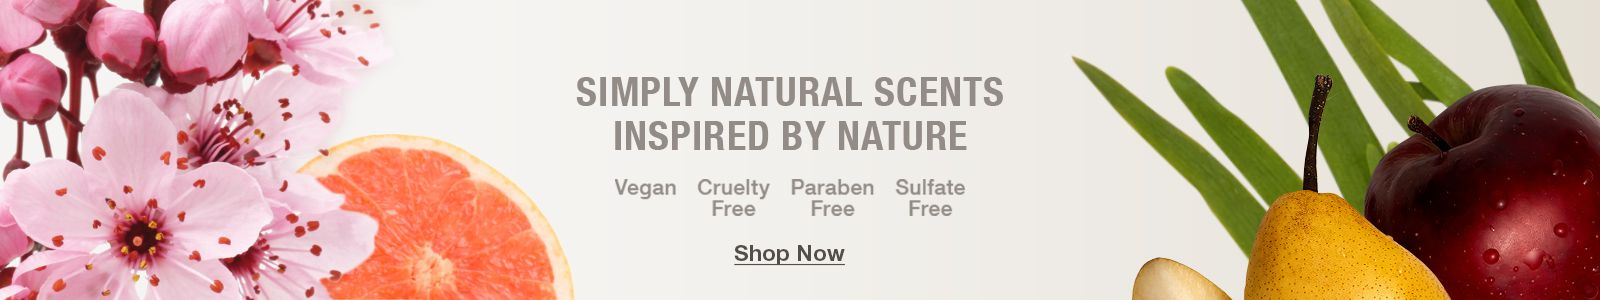 Simply Natural Scents Inspired By Nature, Vegan, Cruelty Free, Paraben Free, Sulfate Free, Shop Now